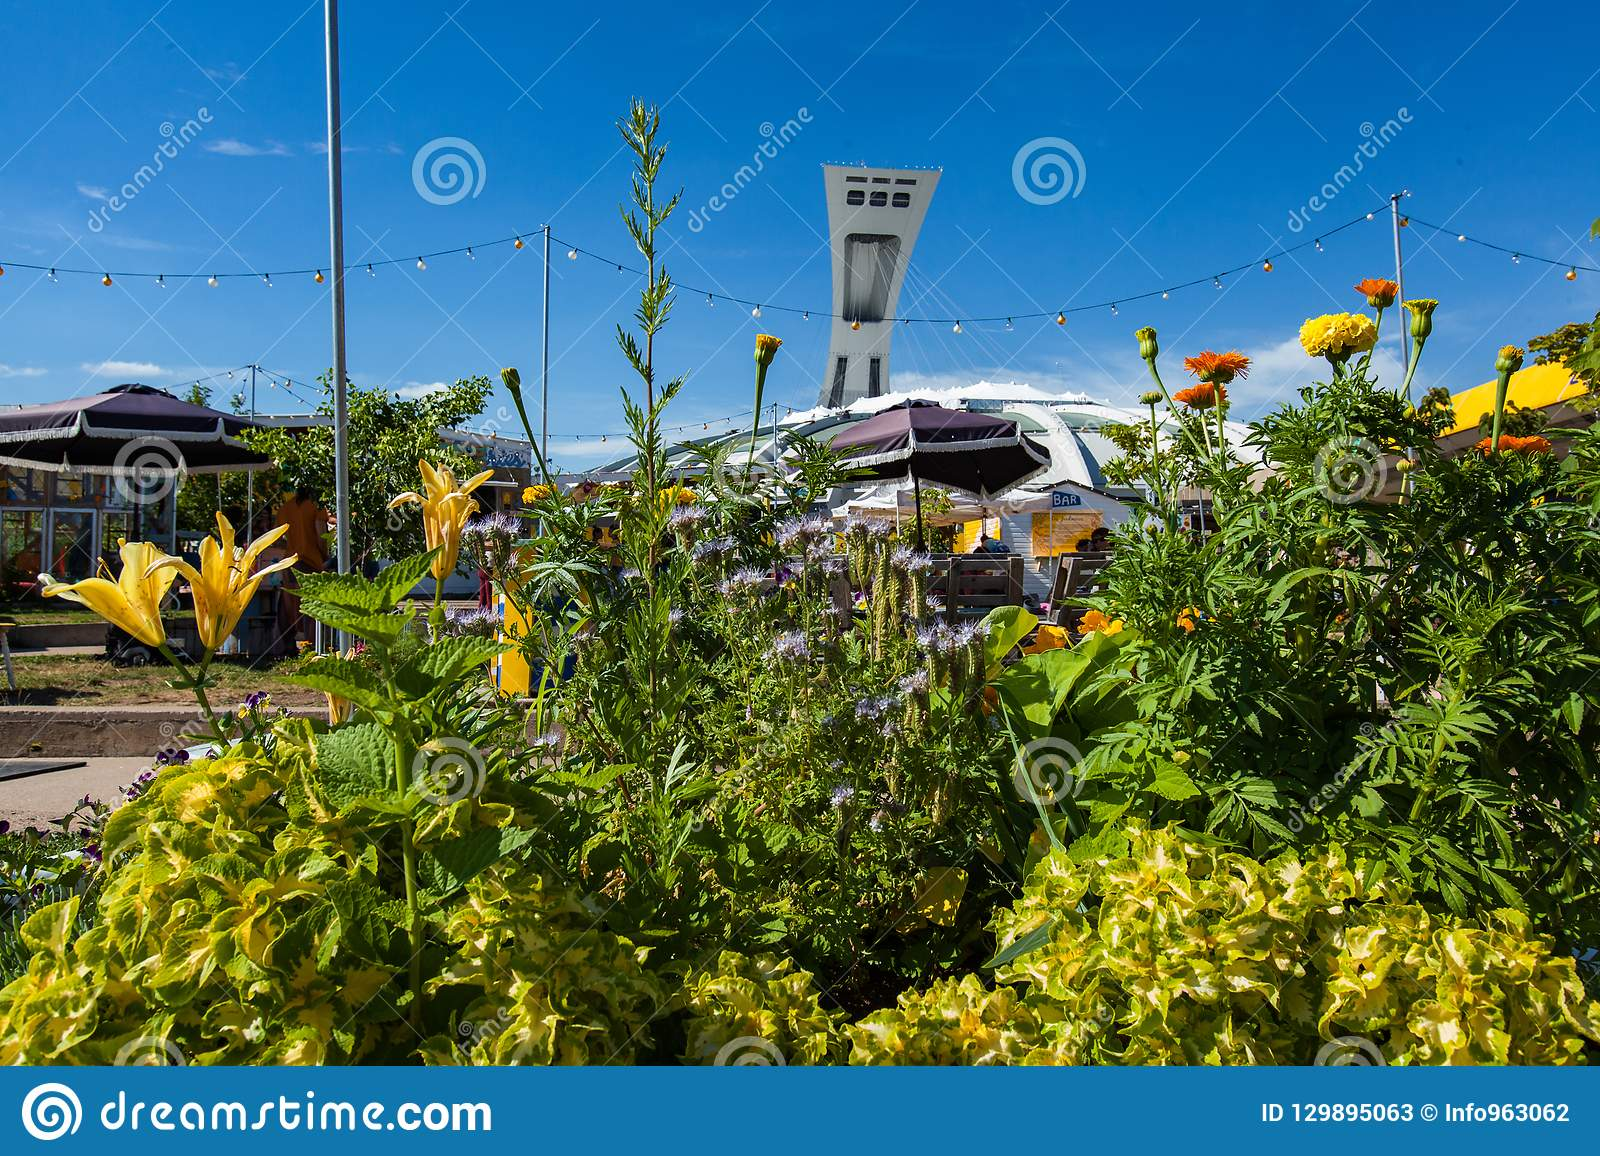 Montreal s Olympic Stadium as seen from behind a colorful flower arrangement